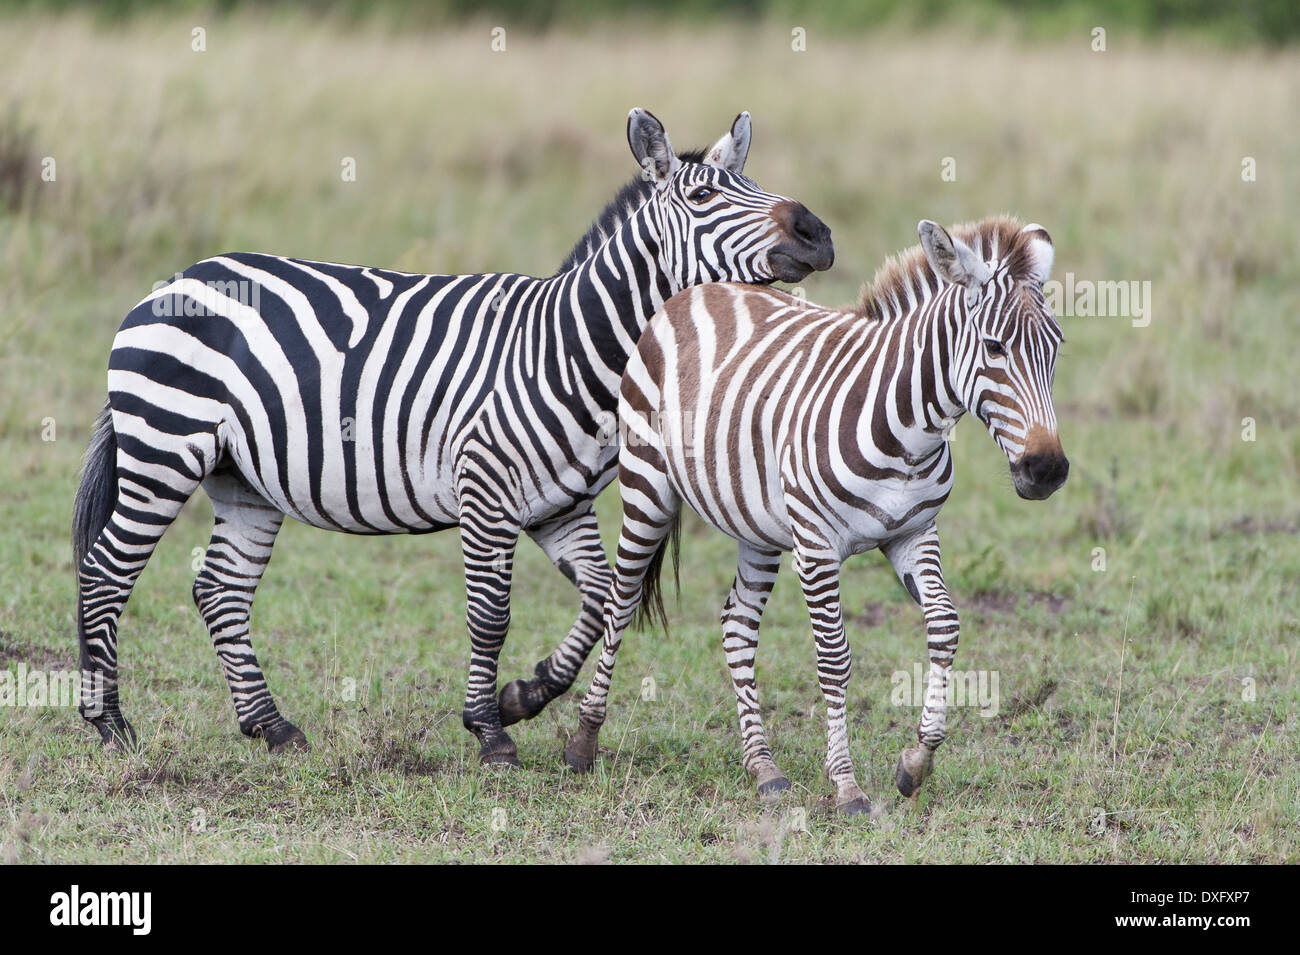 Zebra, playing, spielend, cub, - Stock Image